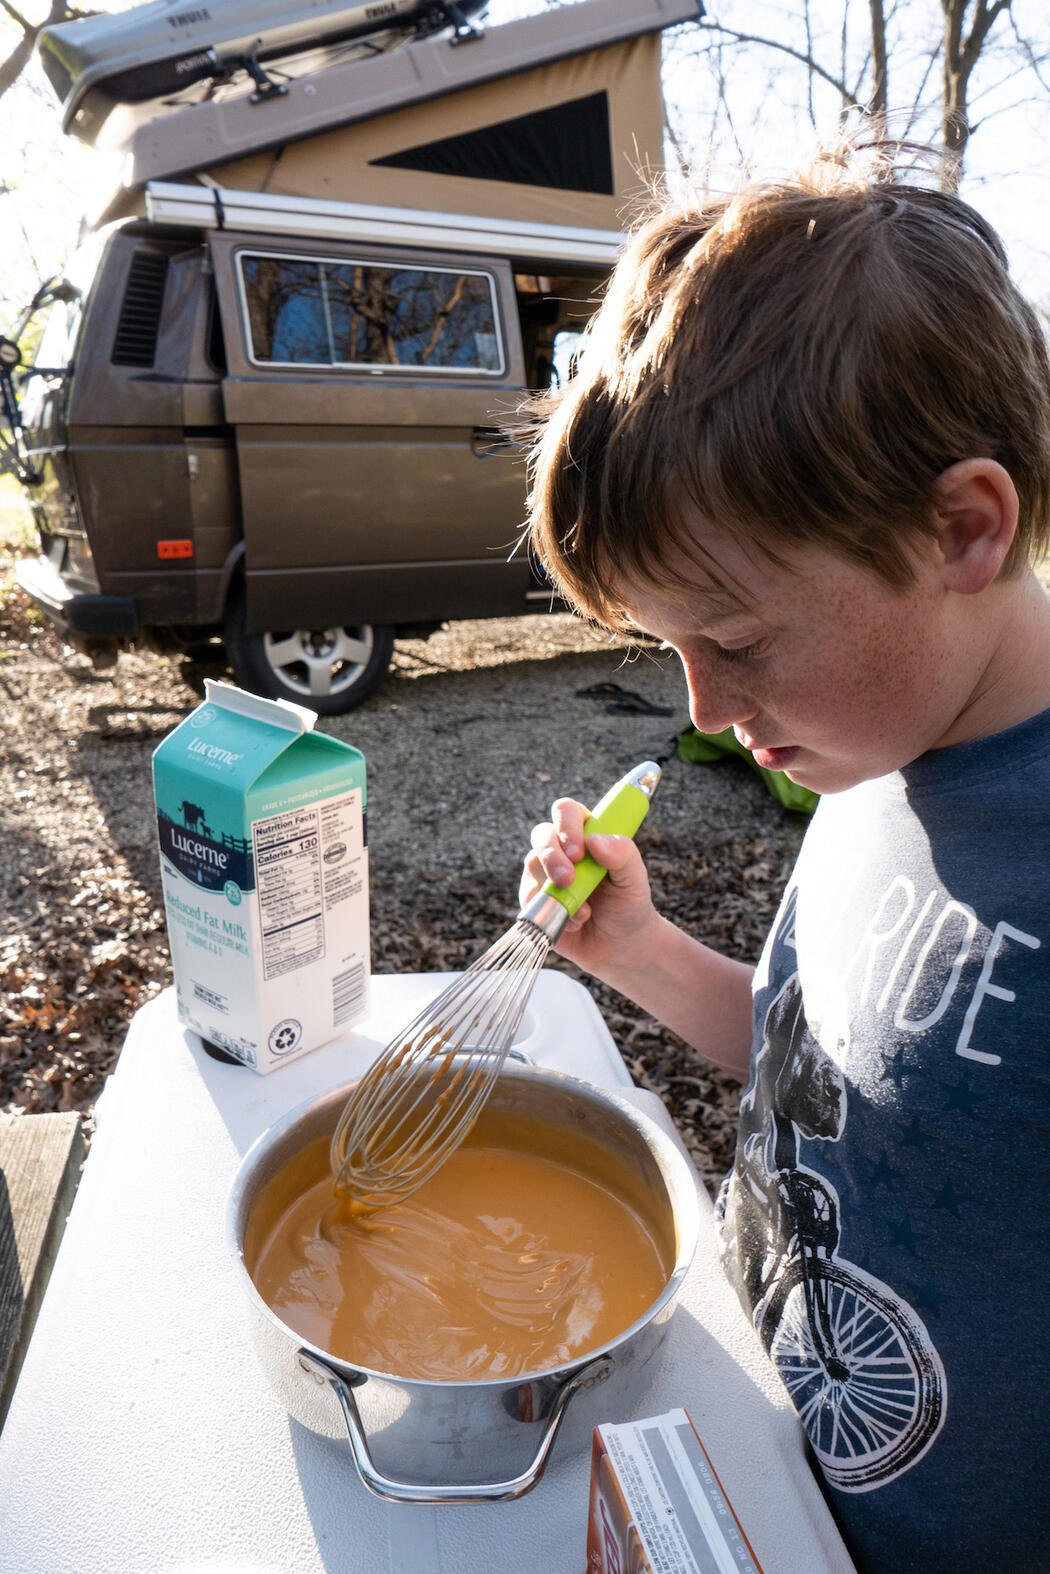 A young boy stirring a pot of pudding with a camper van parked in background.